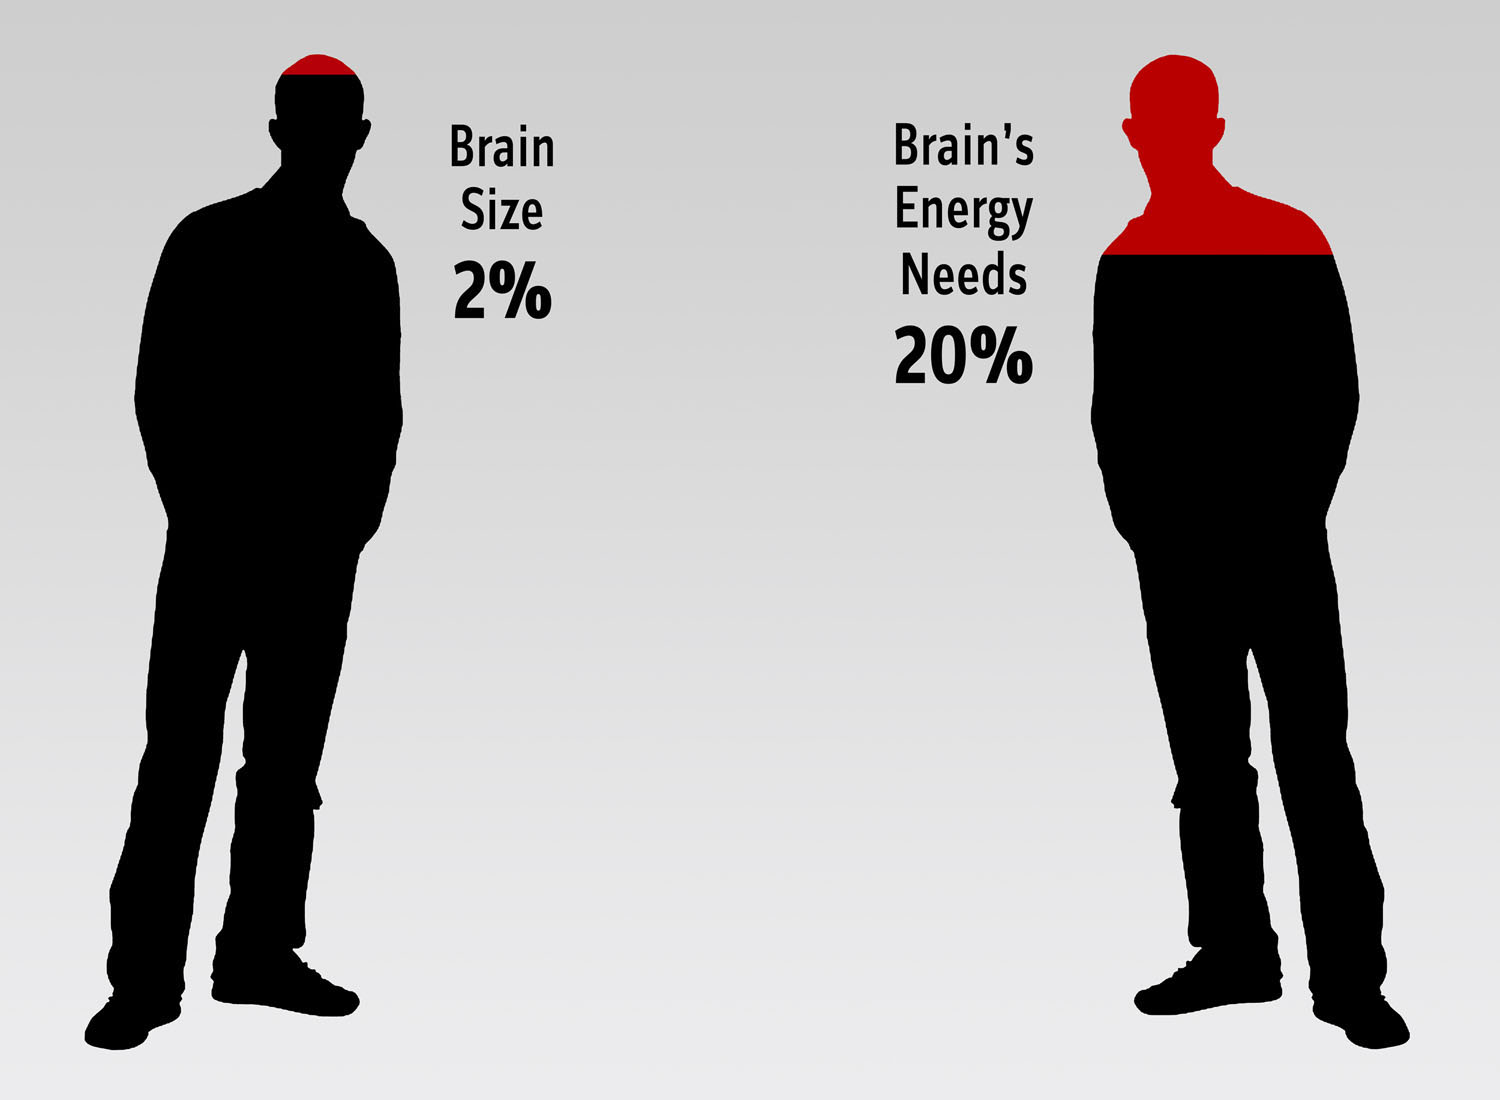 Brains the smithsonian institutions human origins program graphic of silhouettes of two men and text brain size 2 and brains energy ccuart Images